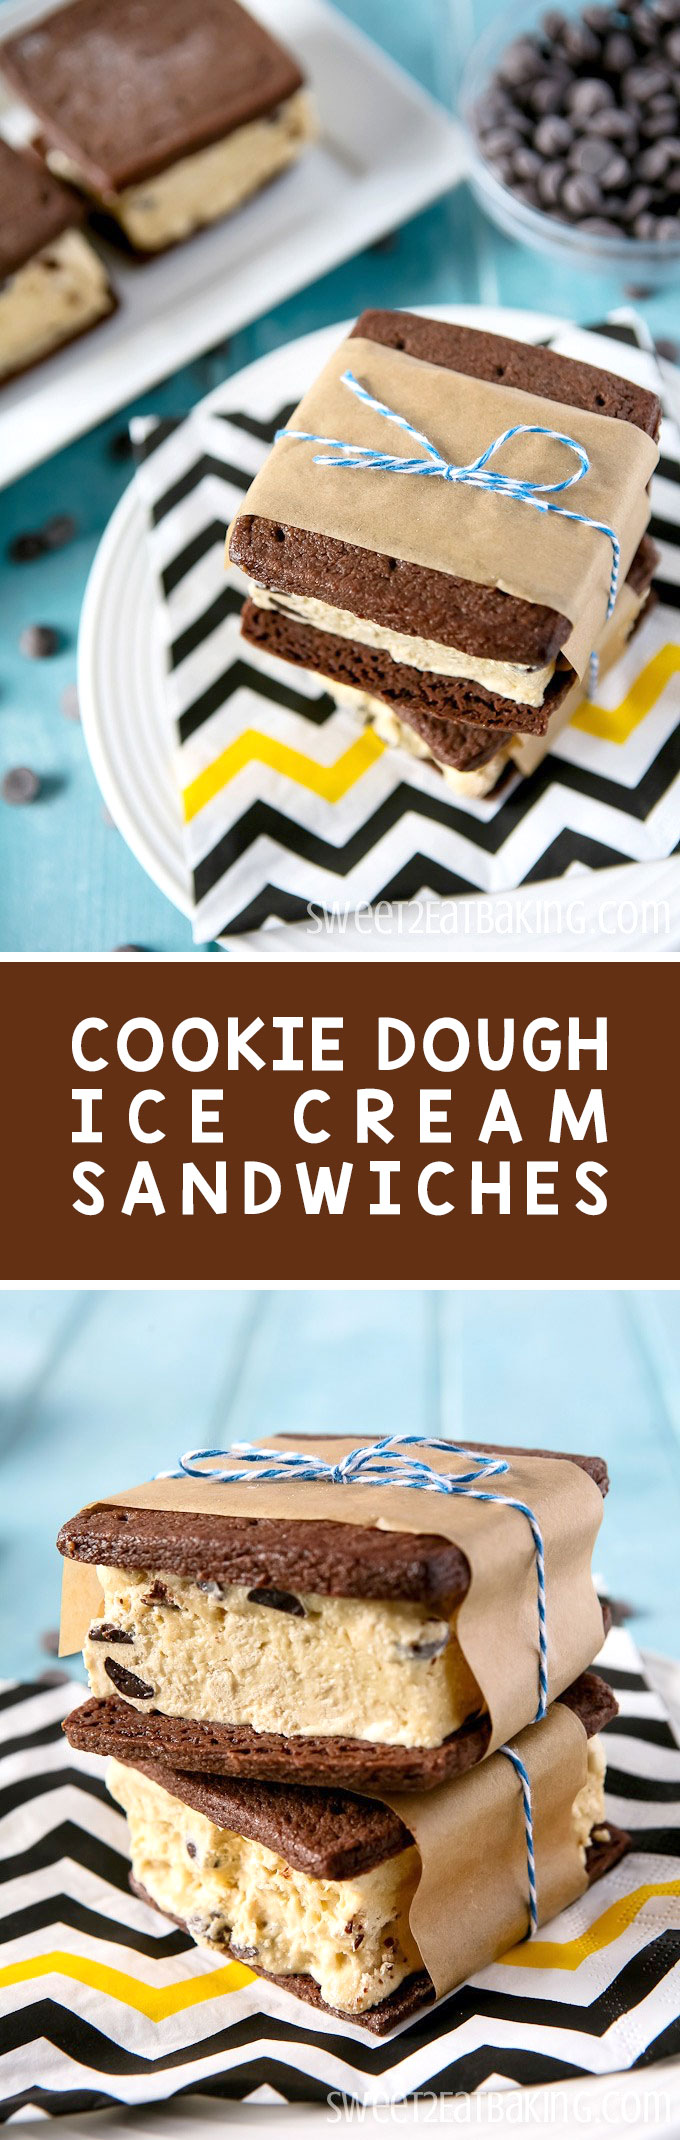 Beat the heat  with this Chocolate Chip Cookie Dough Ice Cream Sandwiches recipe by Sweet2EatBaking.com | Soft firm on the outside and chewy chocolate cookies, filled with a generous serving of delicious homemade cookie dough ice cream.